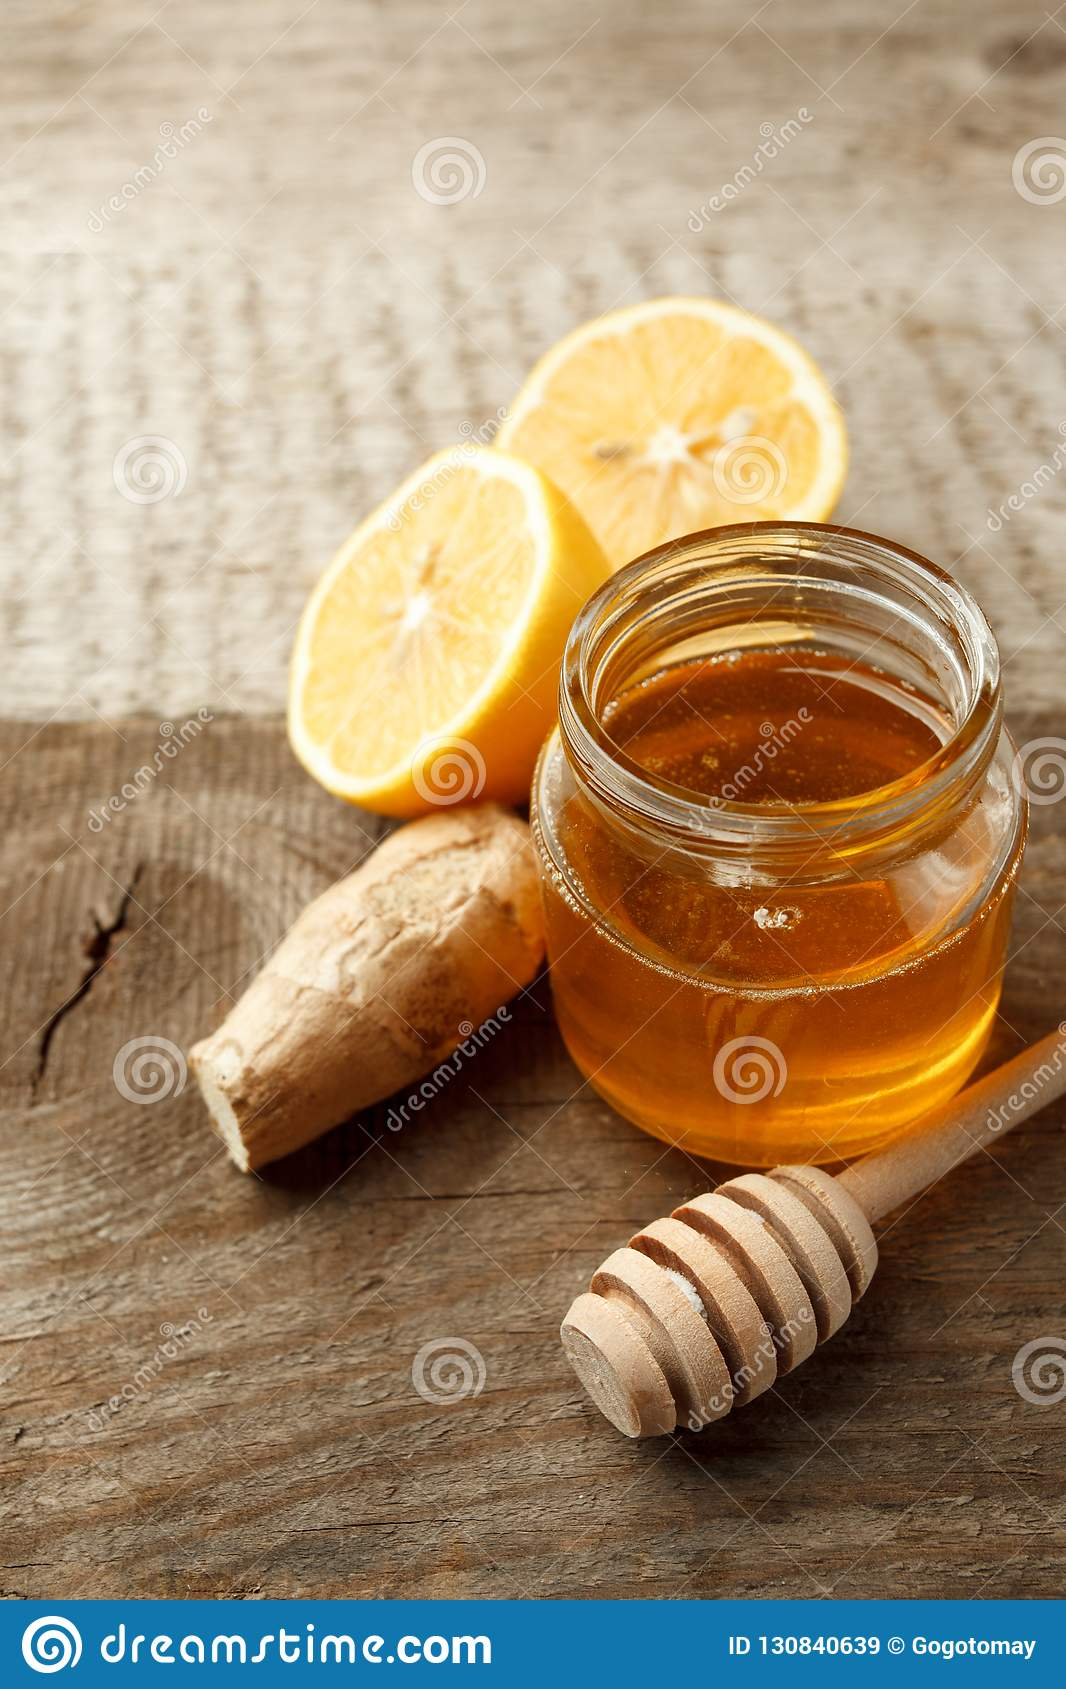 Ingredients for herbal medicine lemon, ginger, honey. Natural products to support the immune system in winter, vintage wooden back